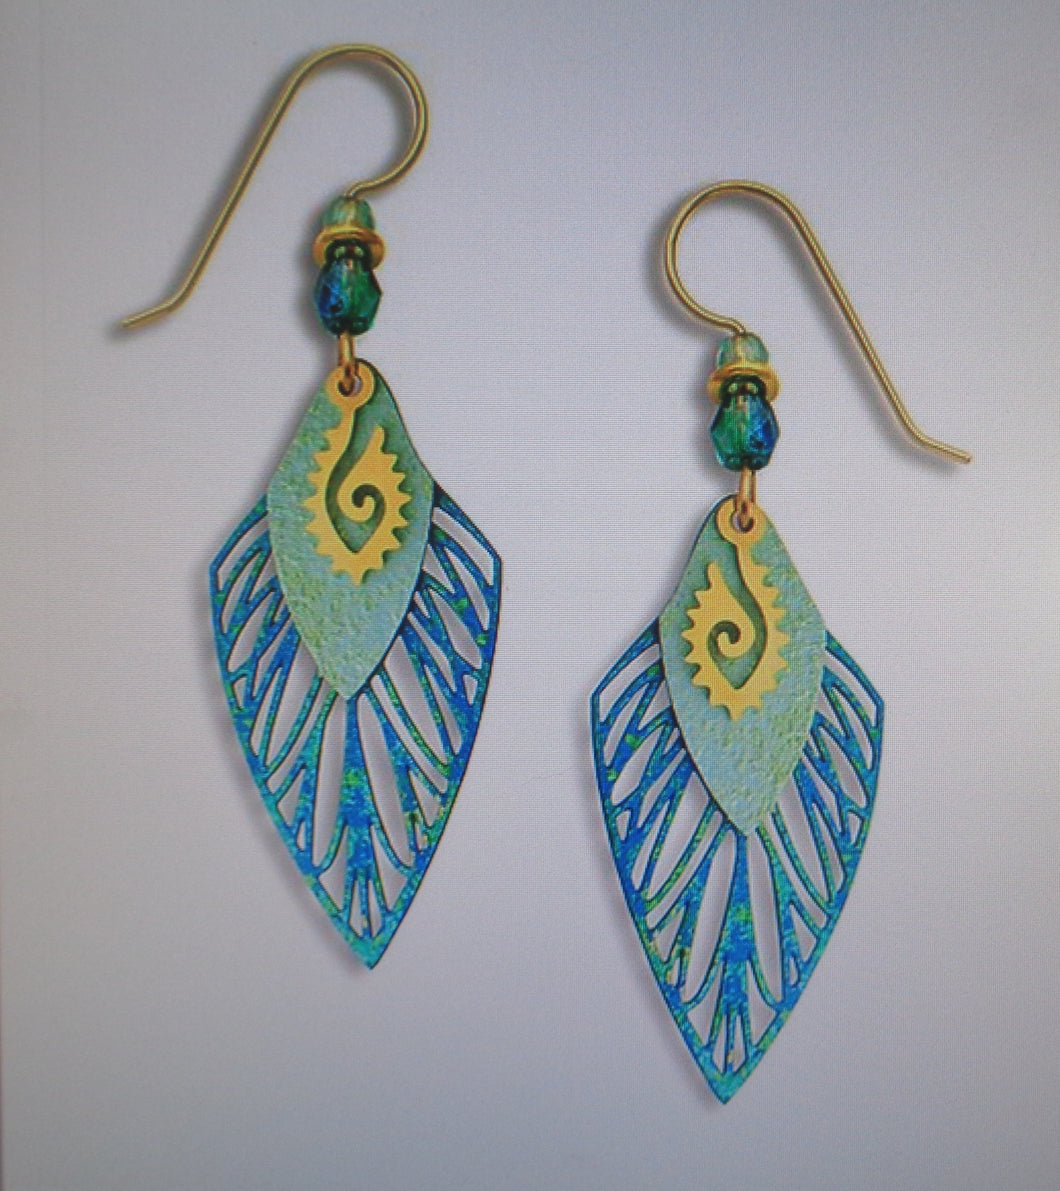 Earrings by Adajio, Rich Blue Feather w/Arrowhead & GP Ancient Eye Symbol